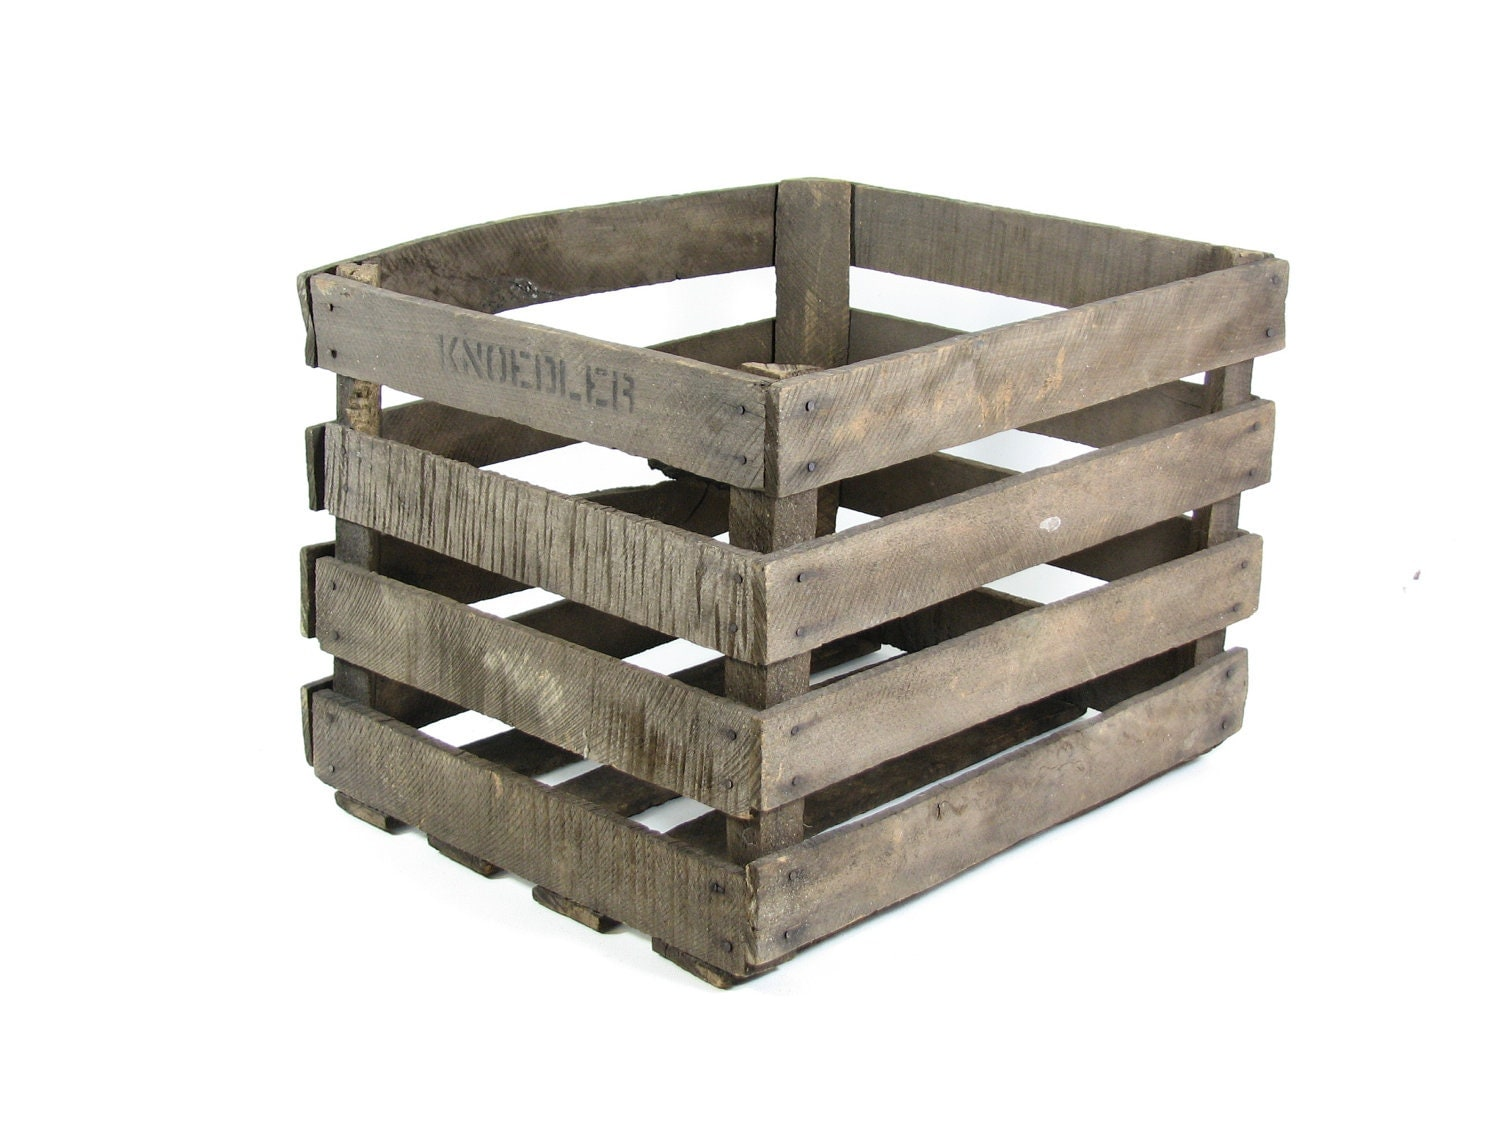 Vintage wood crate apple crate fruit crate stackable storage for Wooden fruit crates